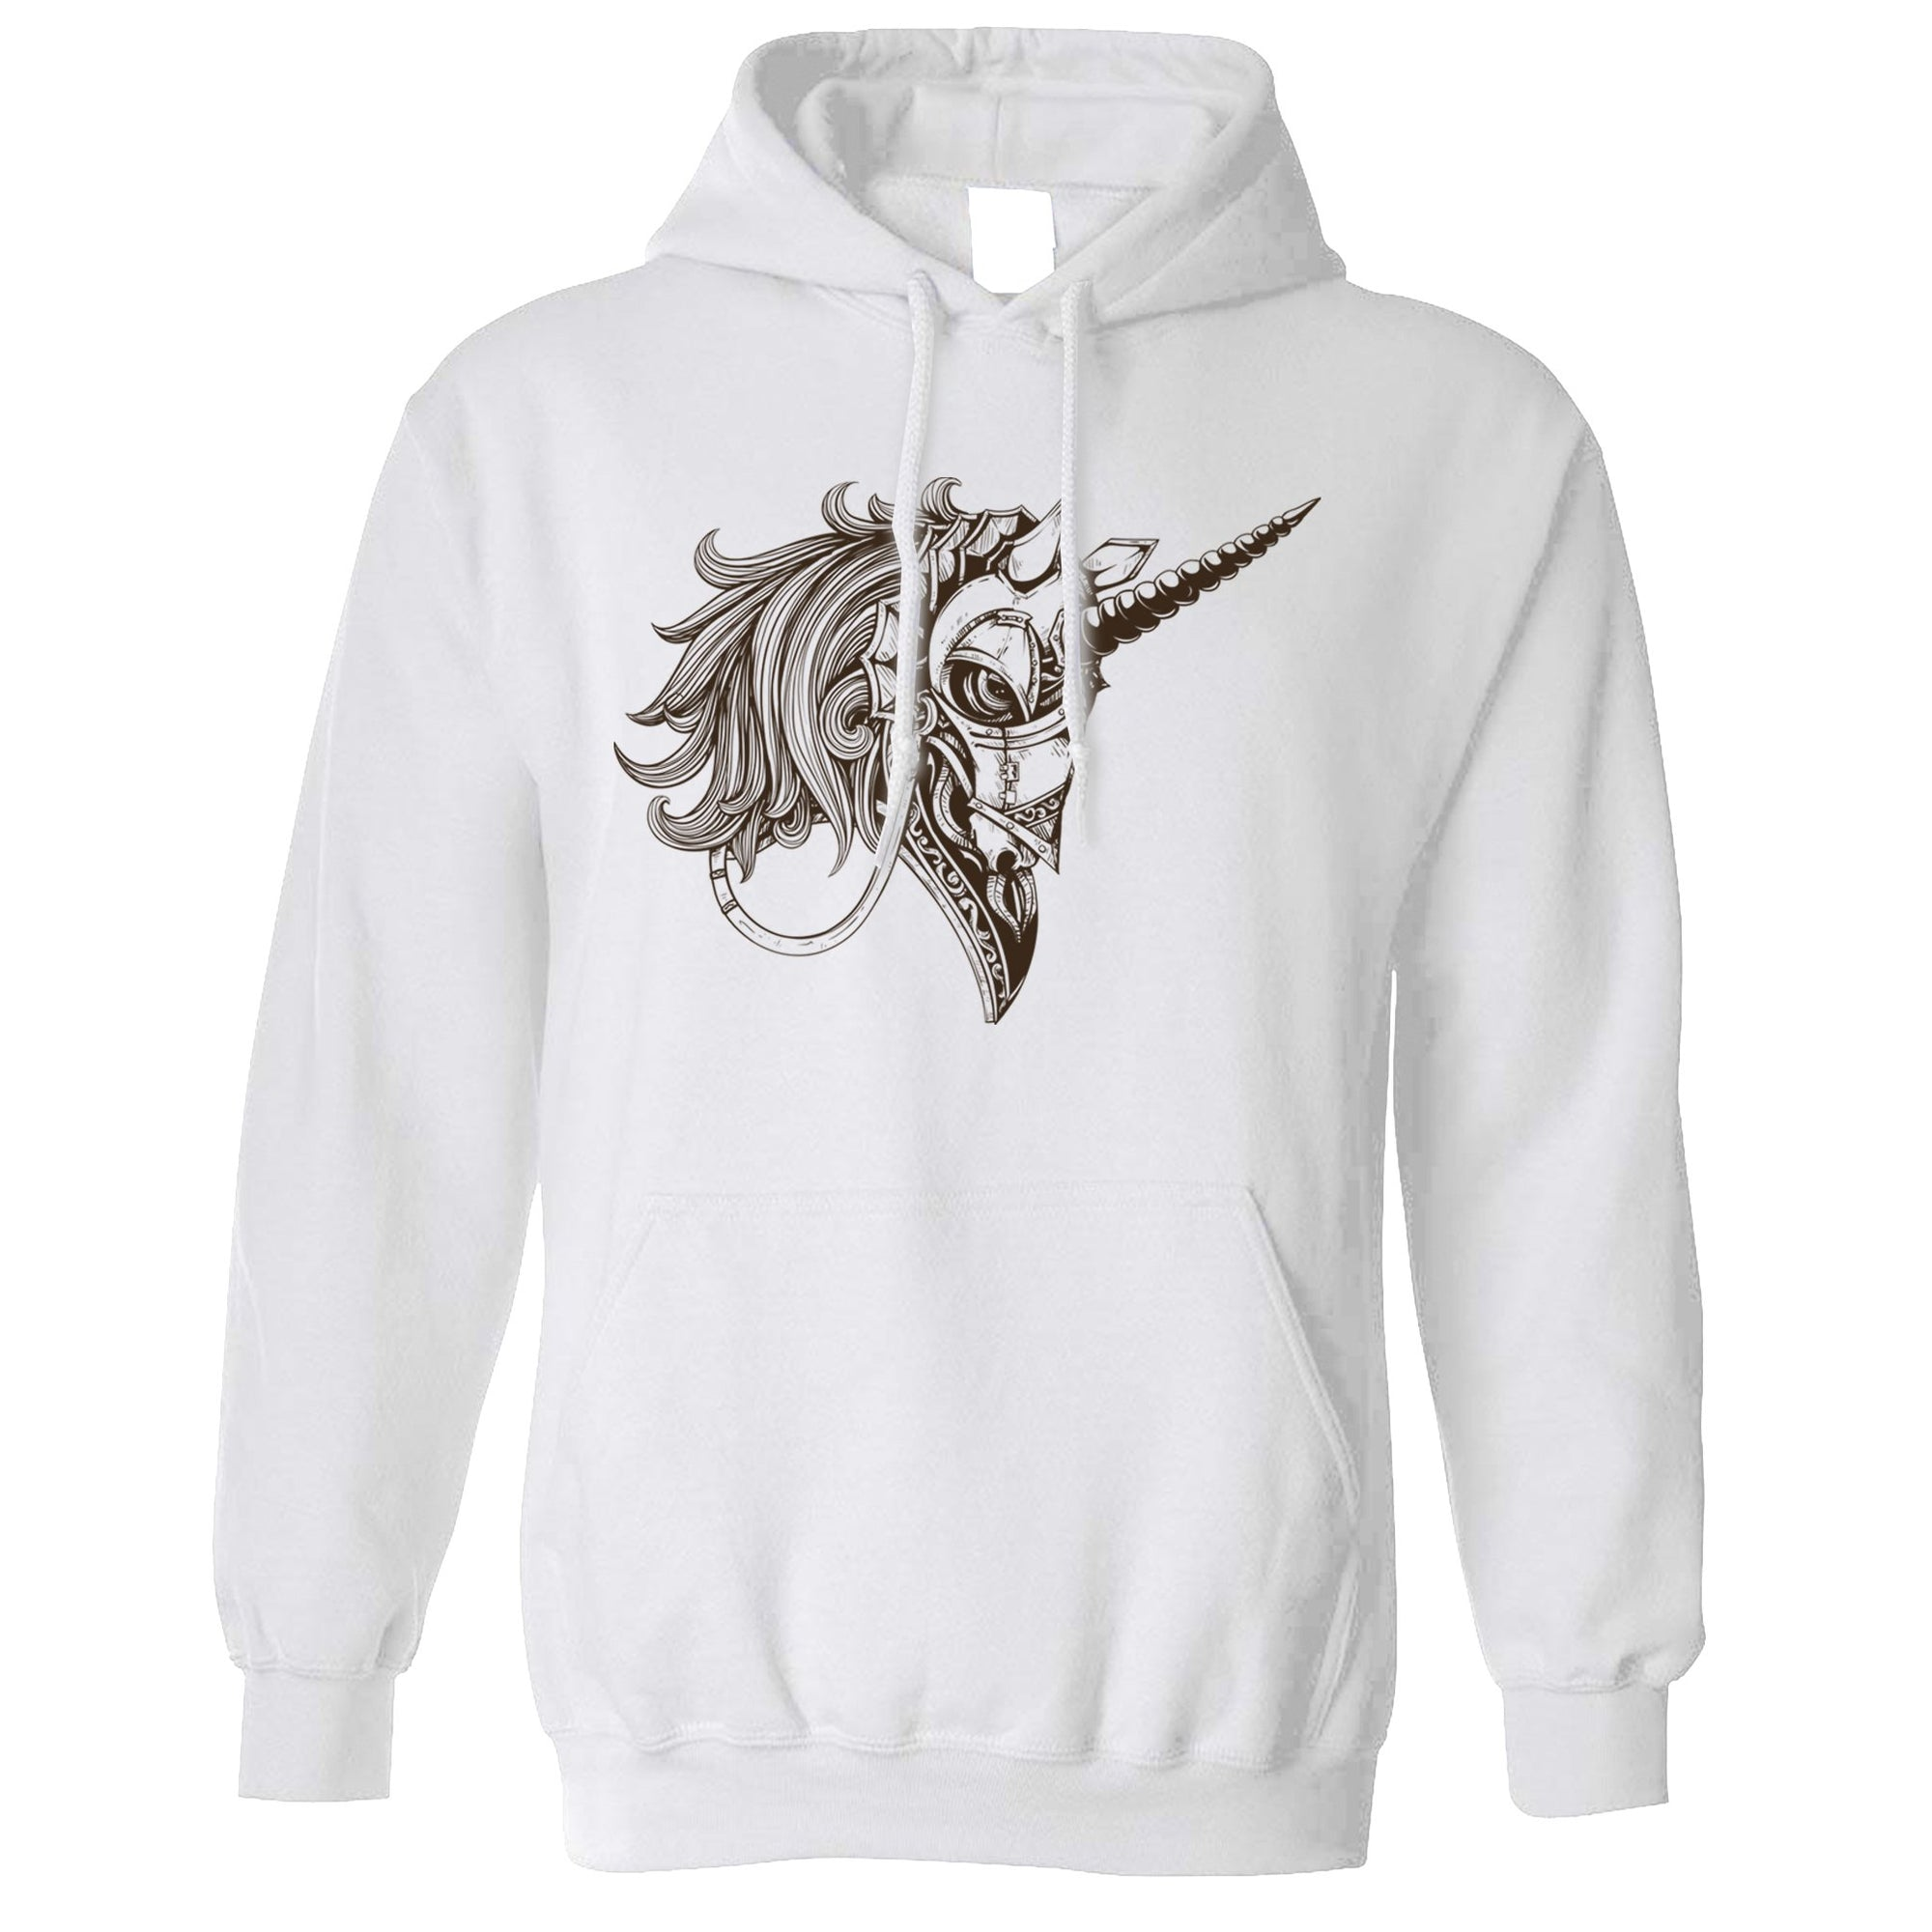 Gothic Art Hoodie Armoured Unicorn Graphic